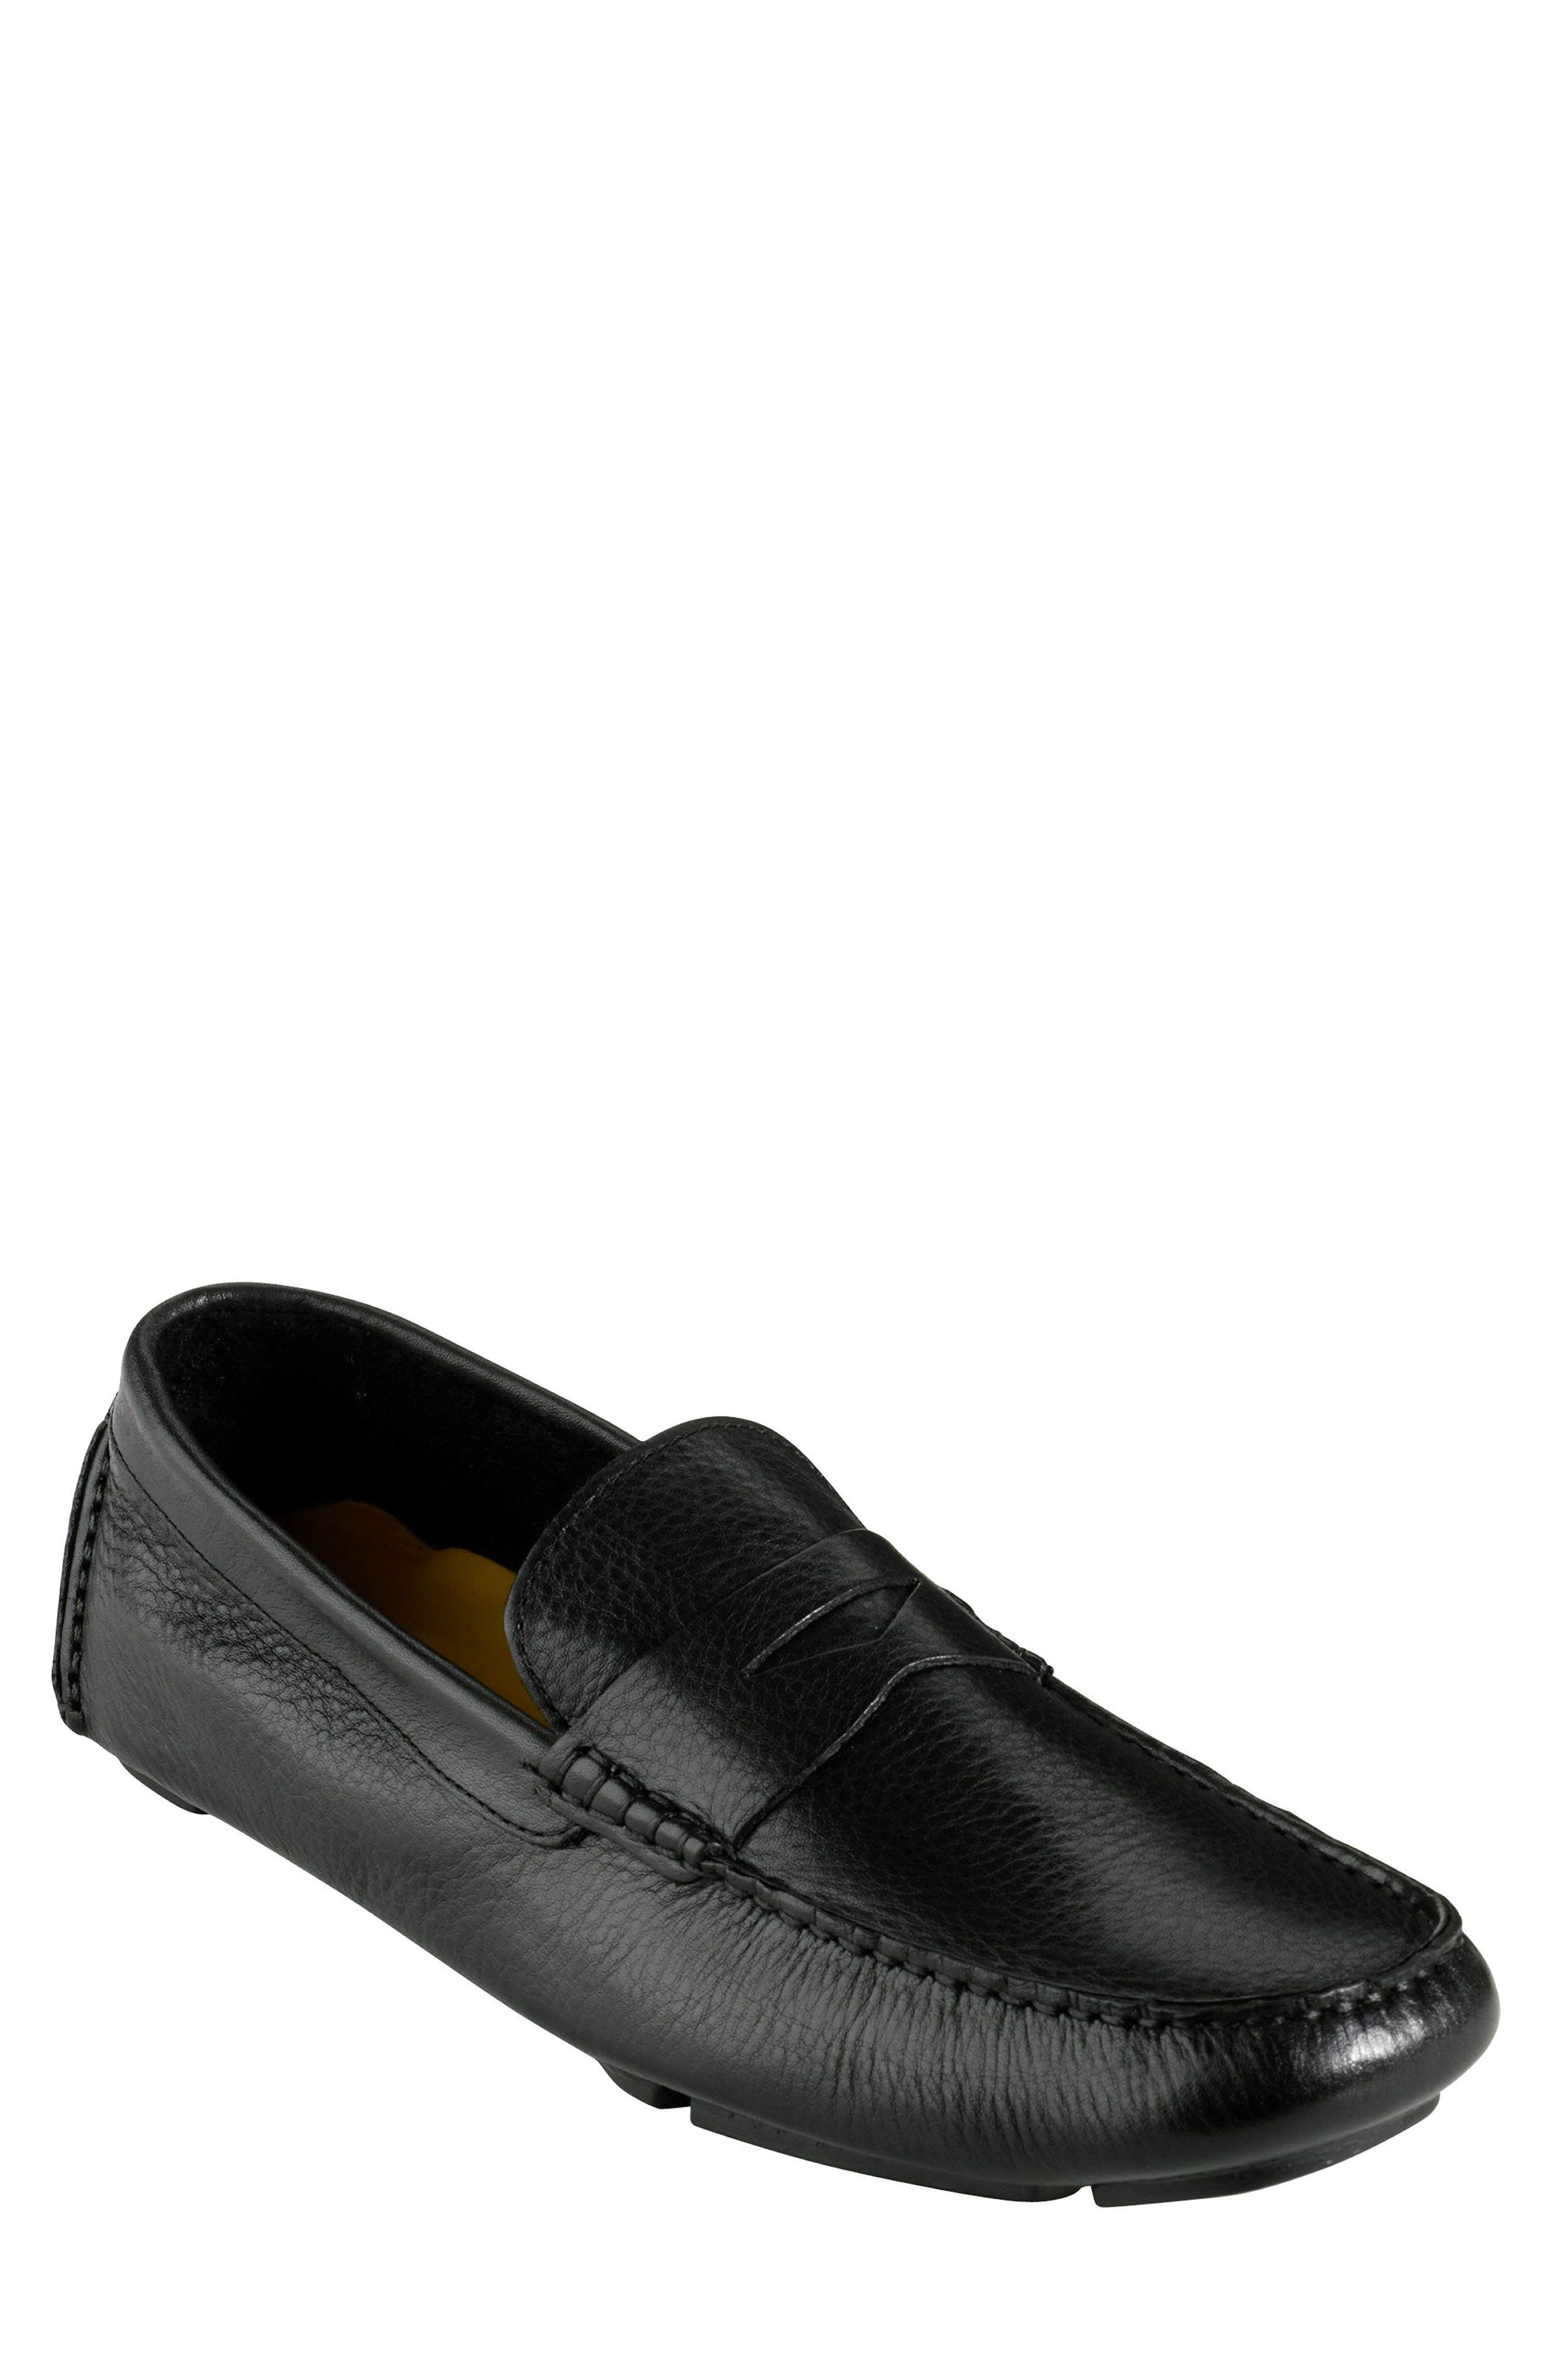 COLE HAAN, 'Howland' Penny Loafer, Main thumbnail 1, color, BLACK TUMBLED